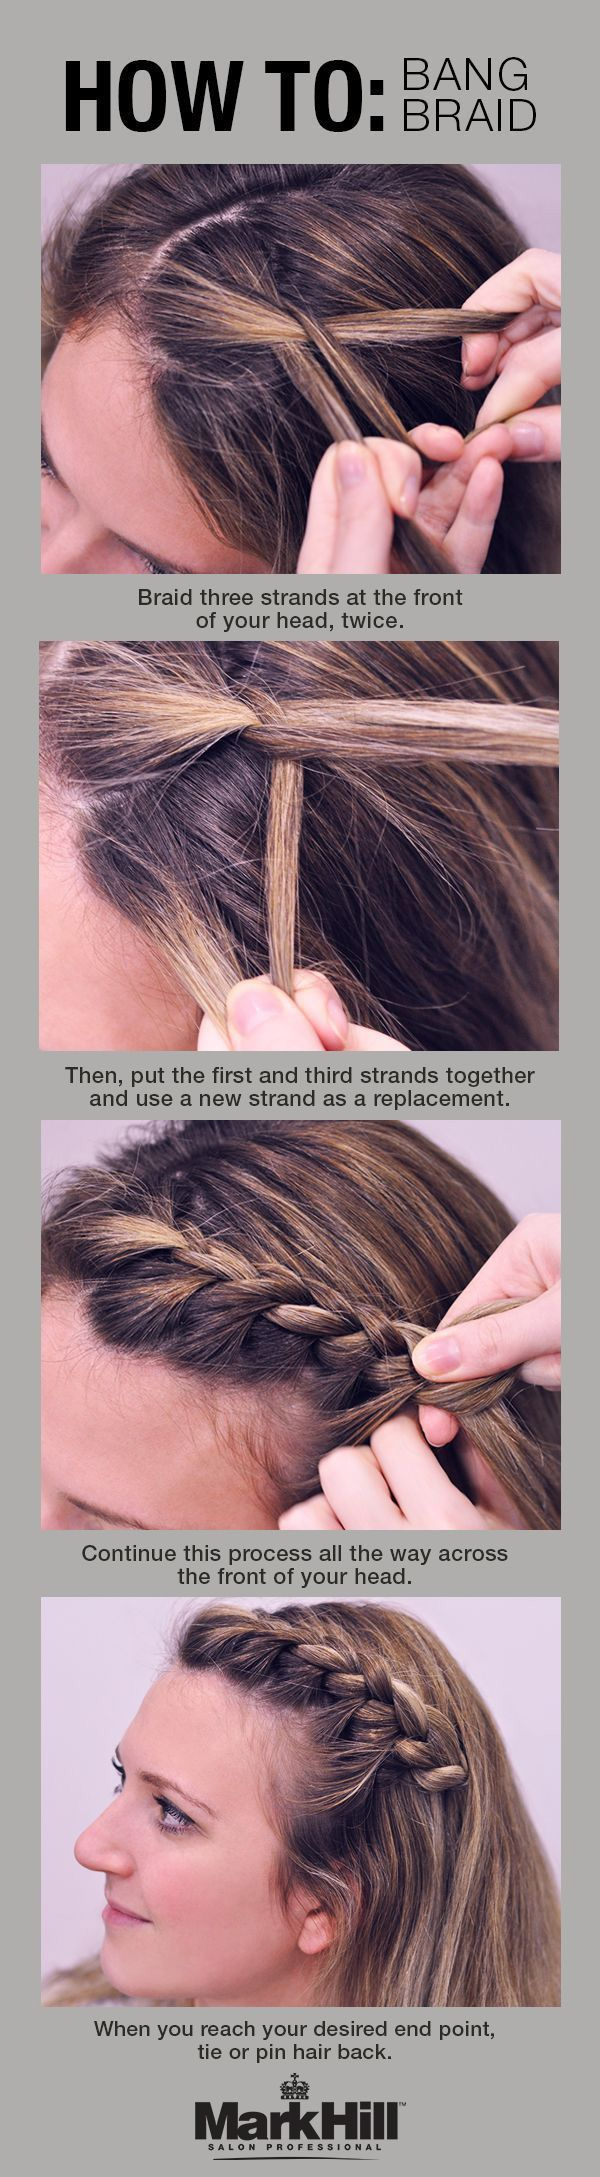 This Tuck And Cover French Braid Is The Perfect Way To Keep Hair Out Of Your Face During The Hot Summer Hair Hacks Hair Styles Long Hair Styles